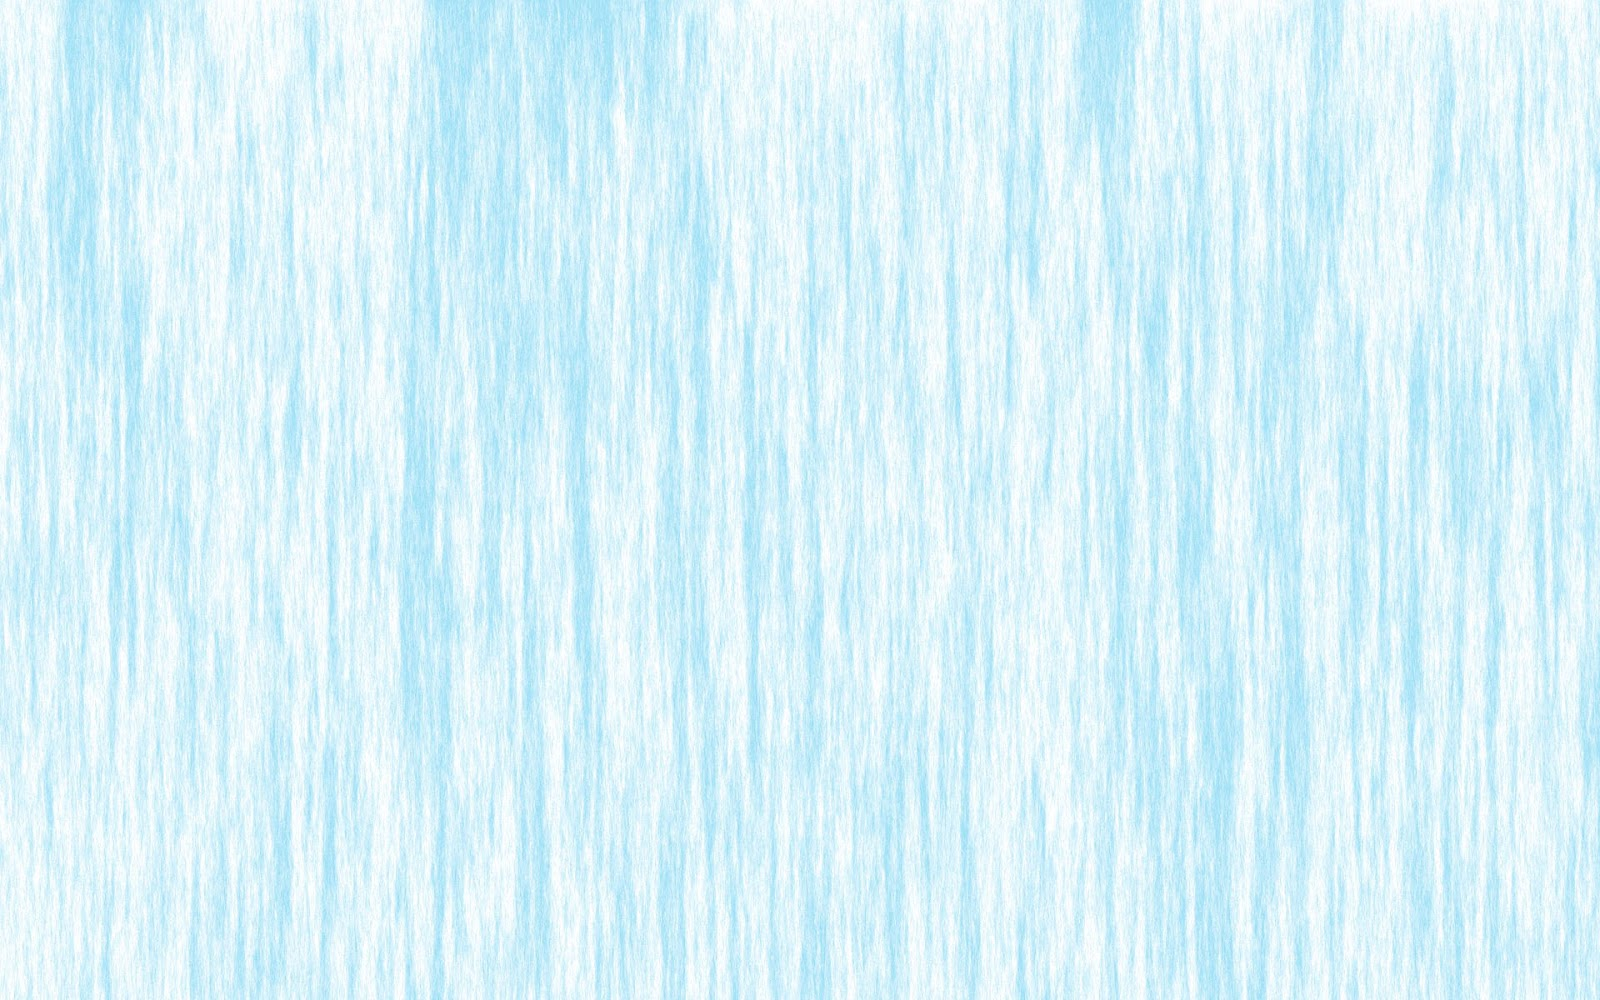 solid light blue wallpaper hd - photo #41